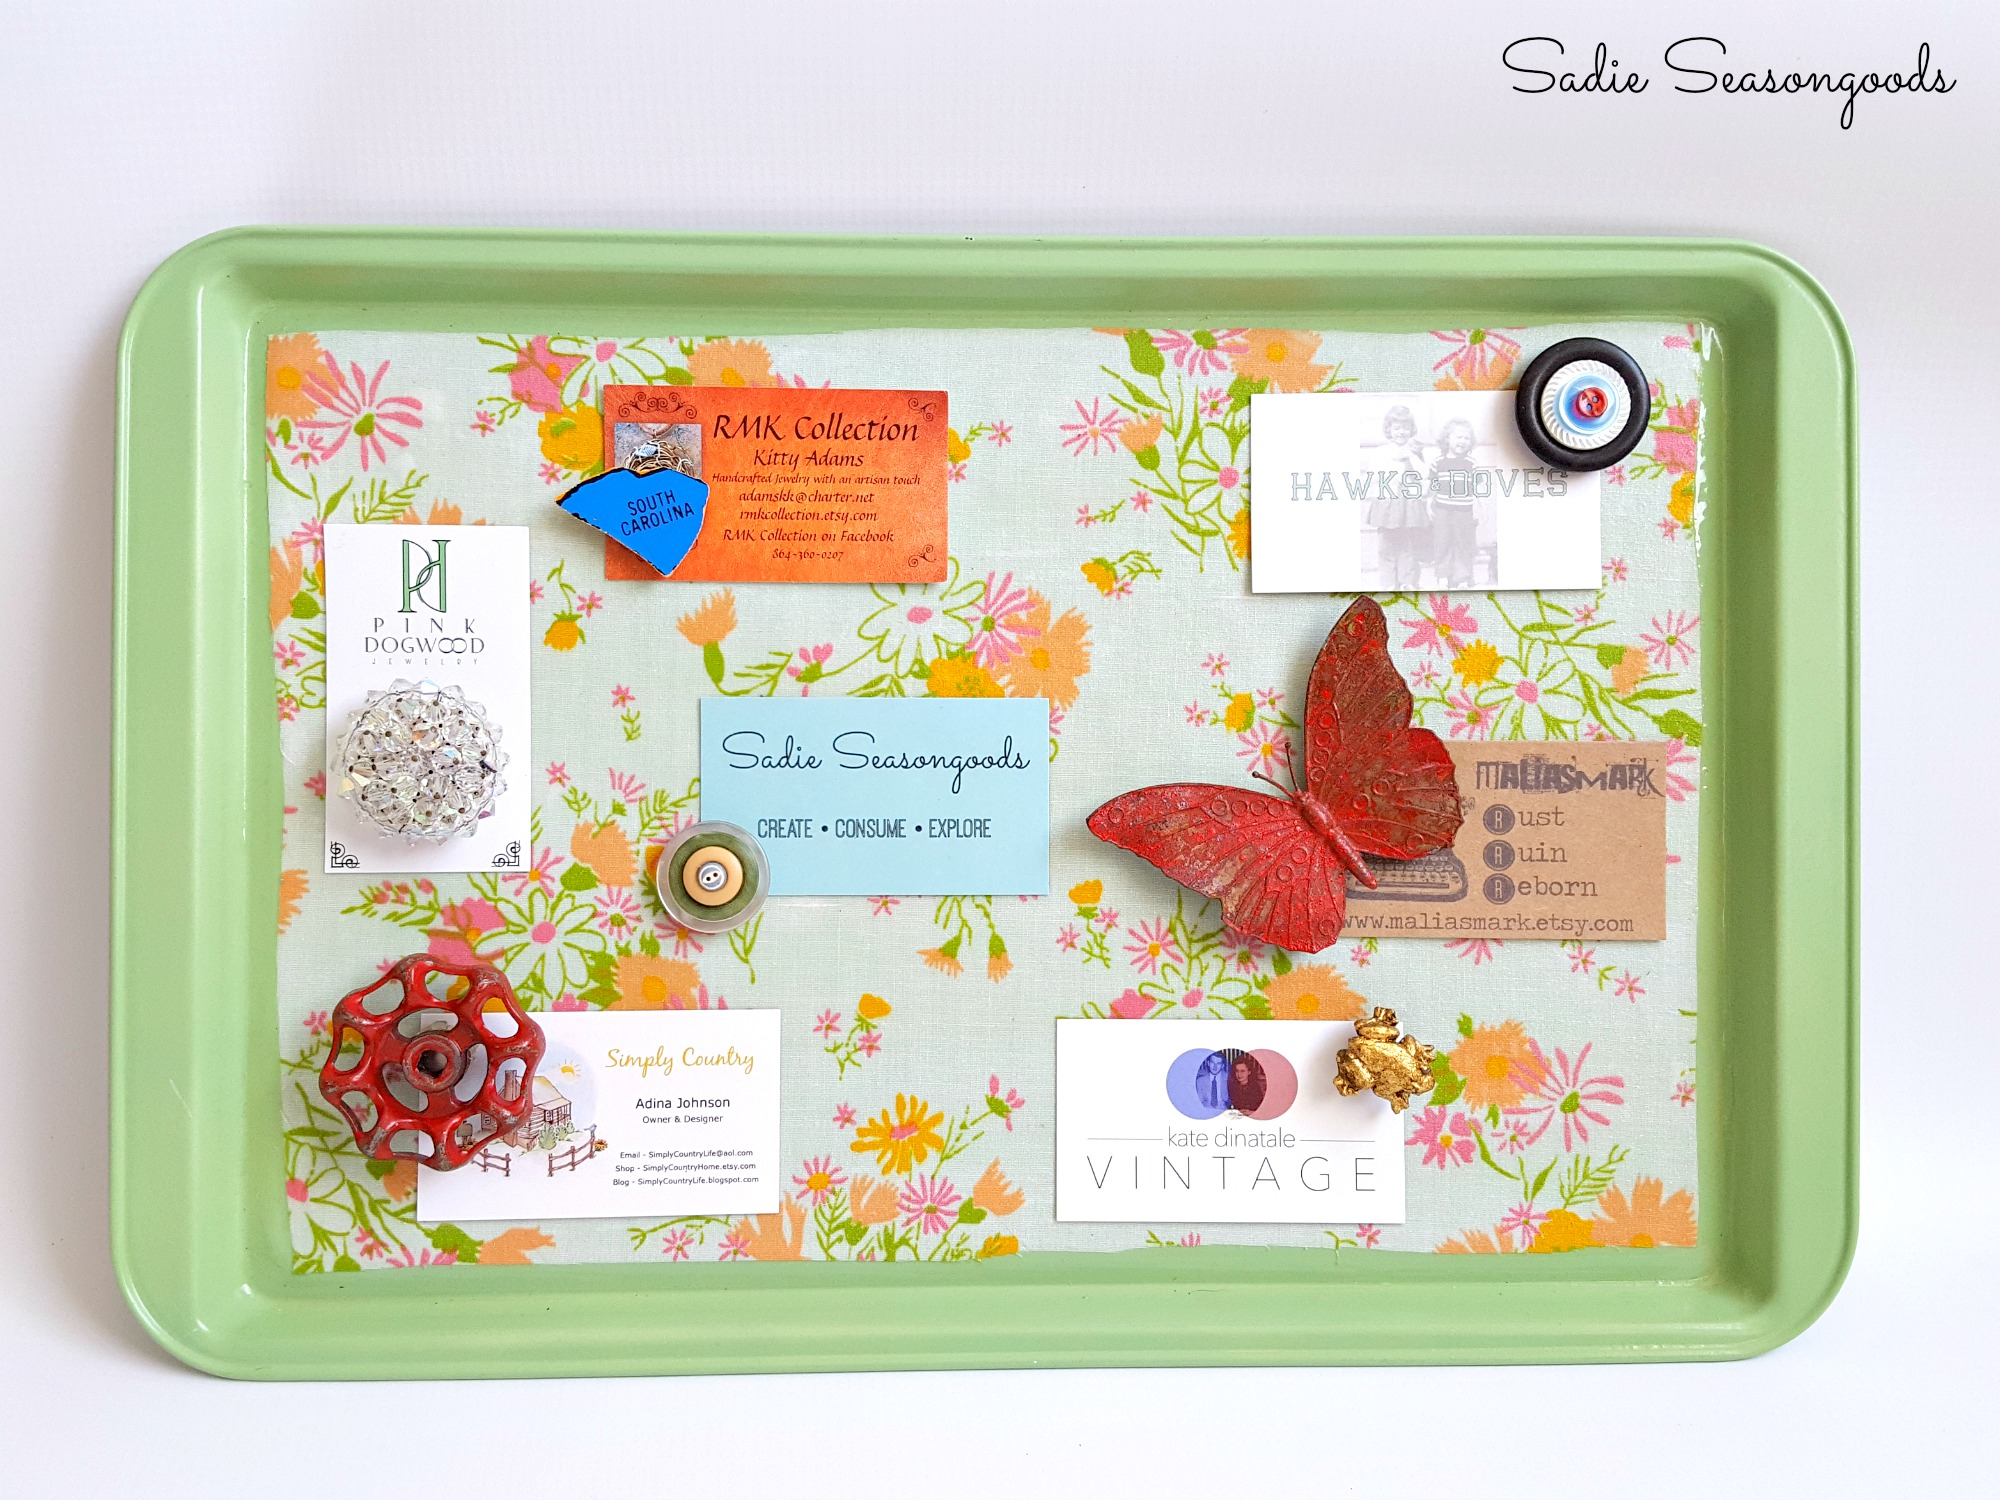 One coast of paint made this cookie tray a creative magnetic message board